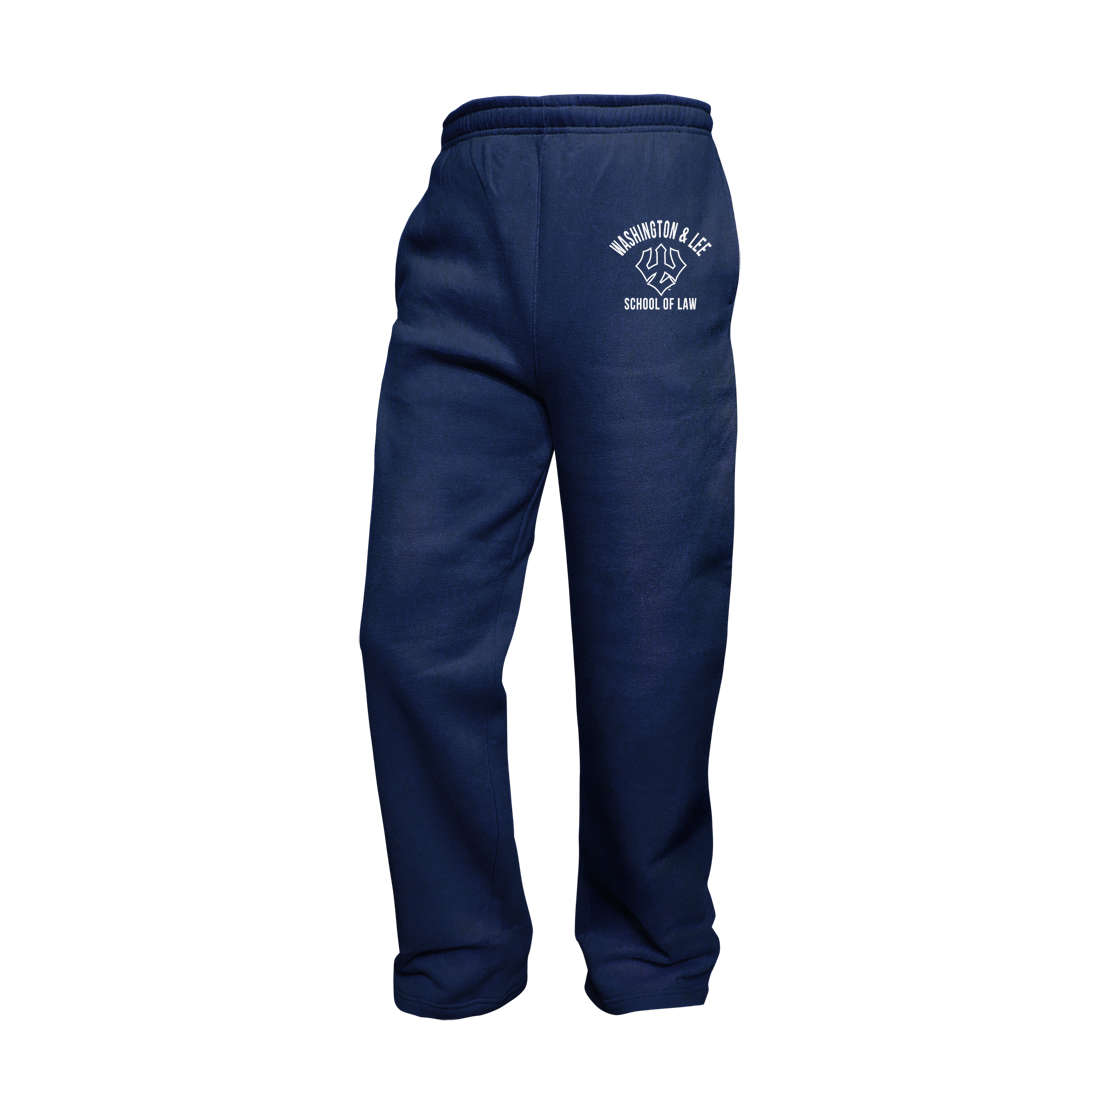 Open Bottom Law Sweatpants